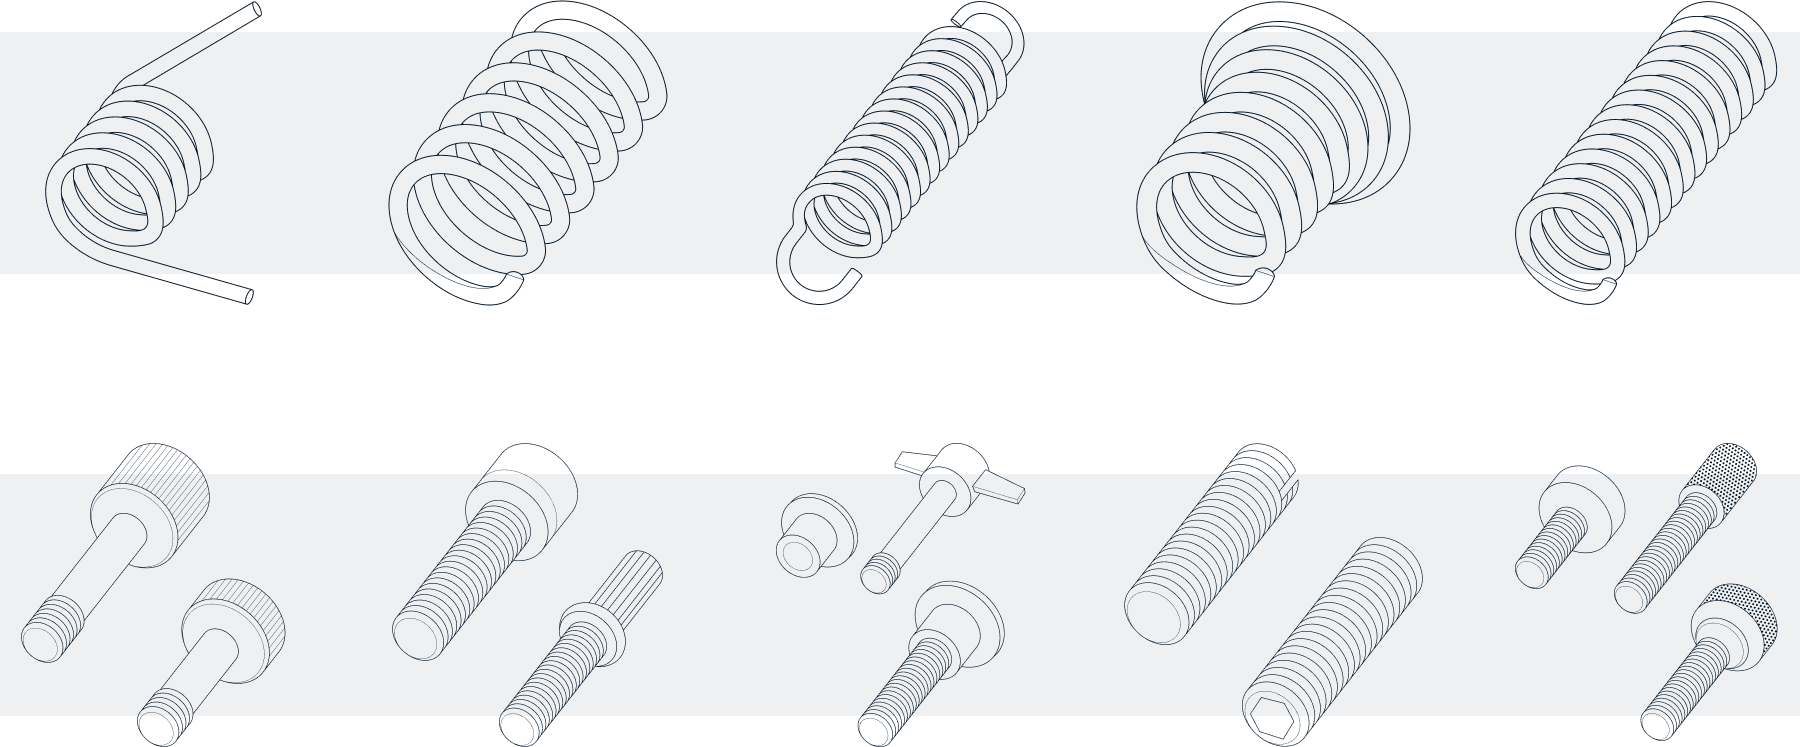 Grid of types of components MW Industries offers depicted via larger detailed illustrations